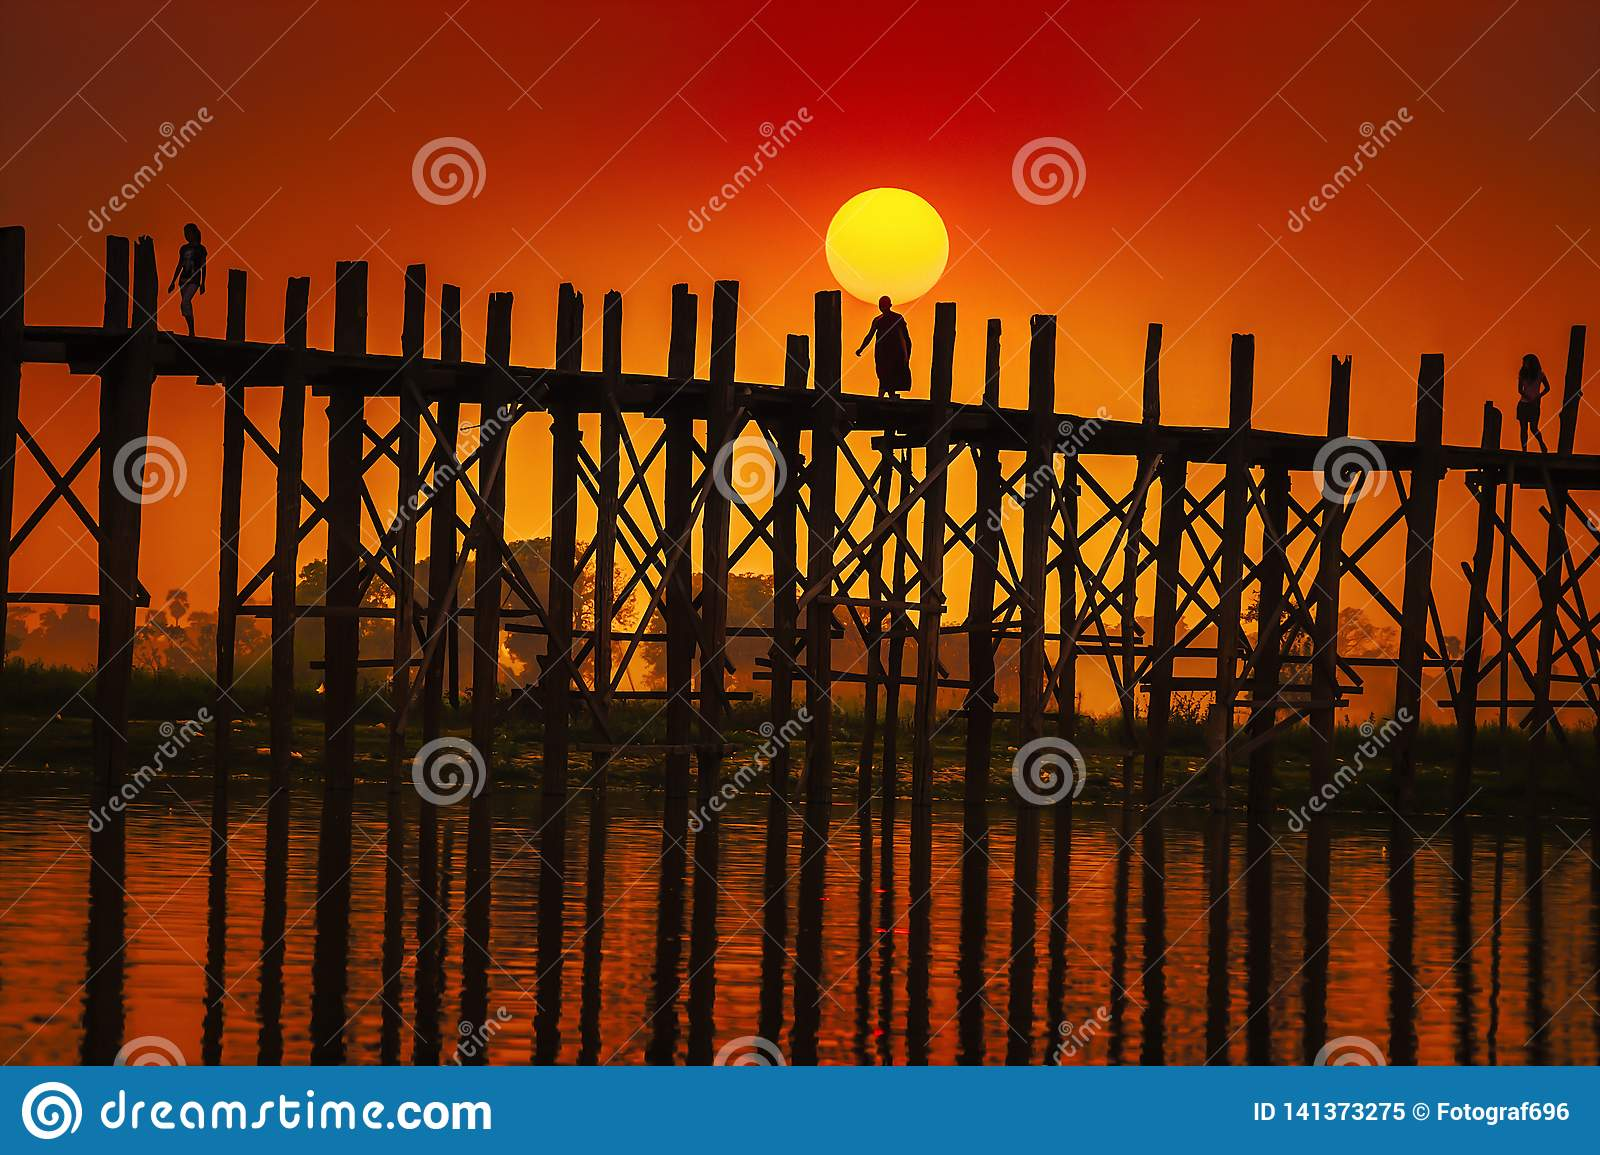 U Bein Bridge Mandalay in Myanmar.